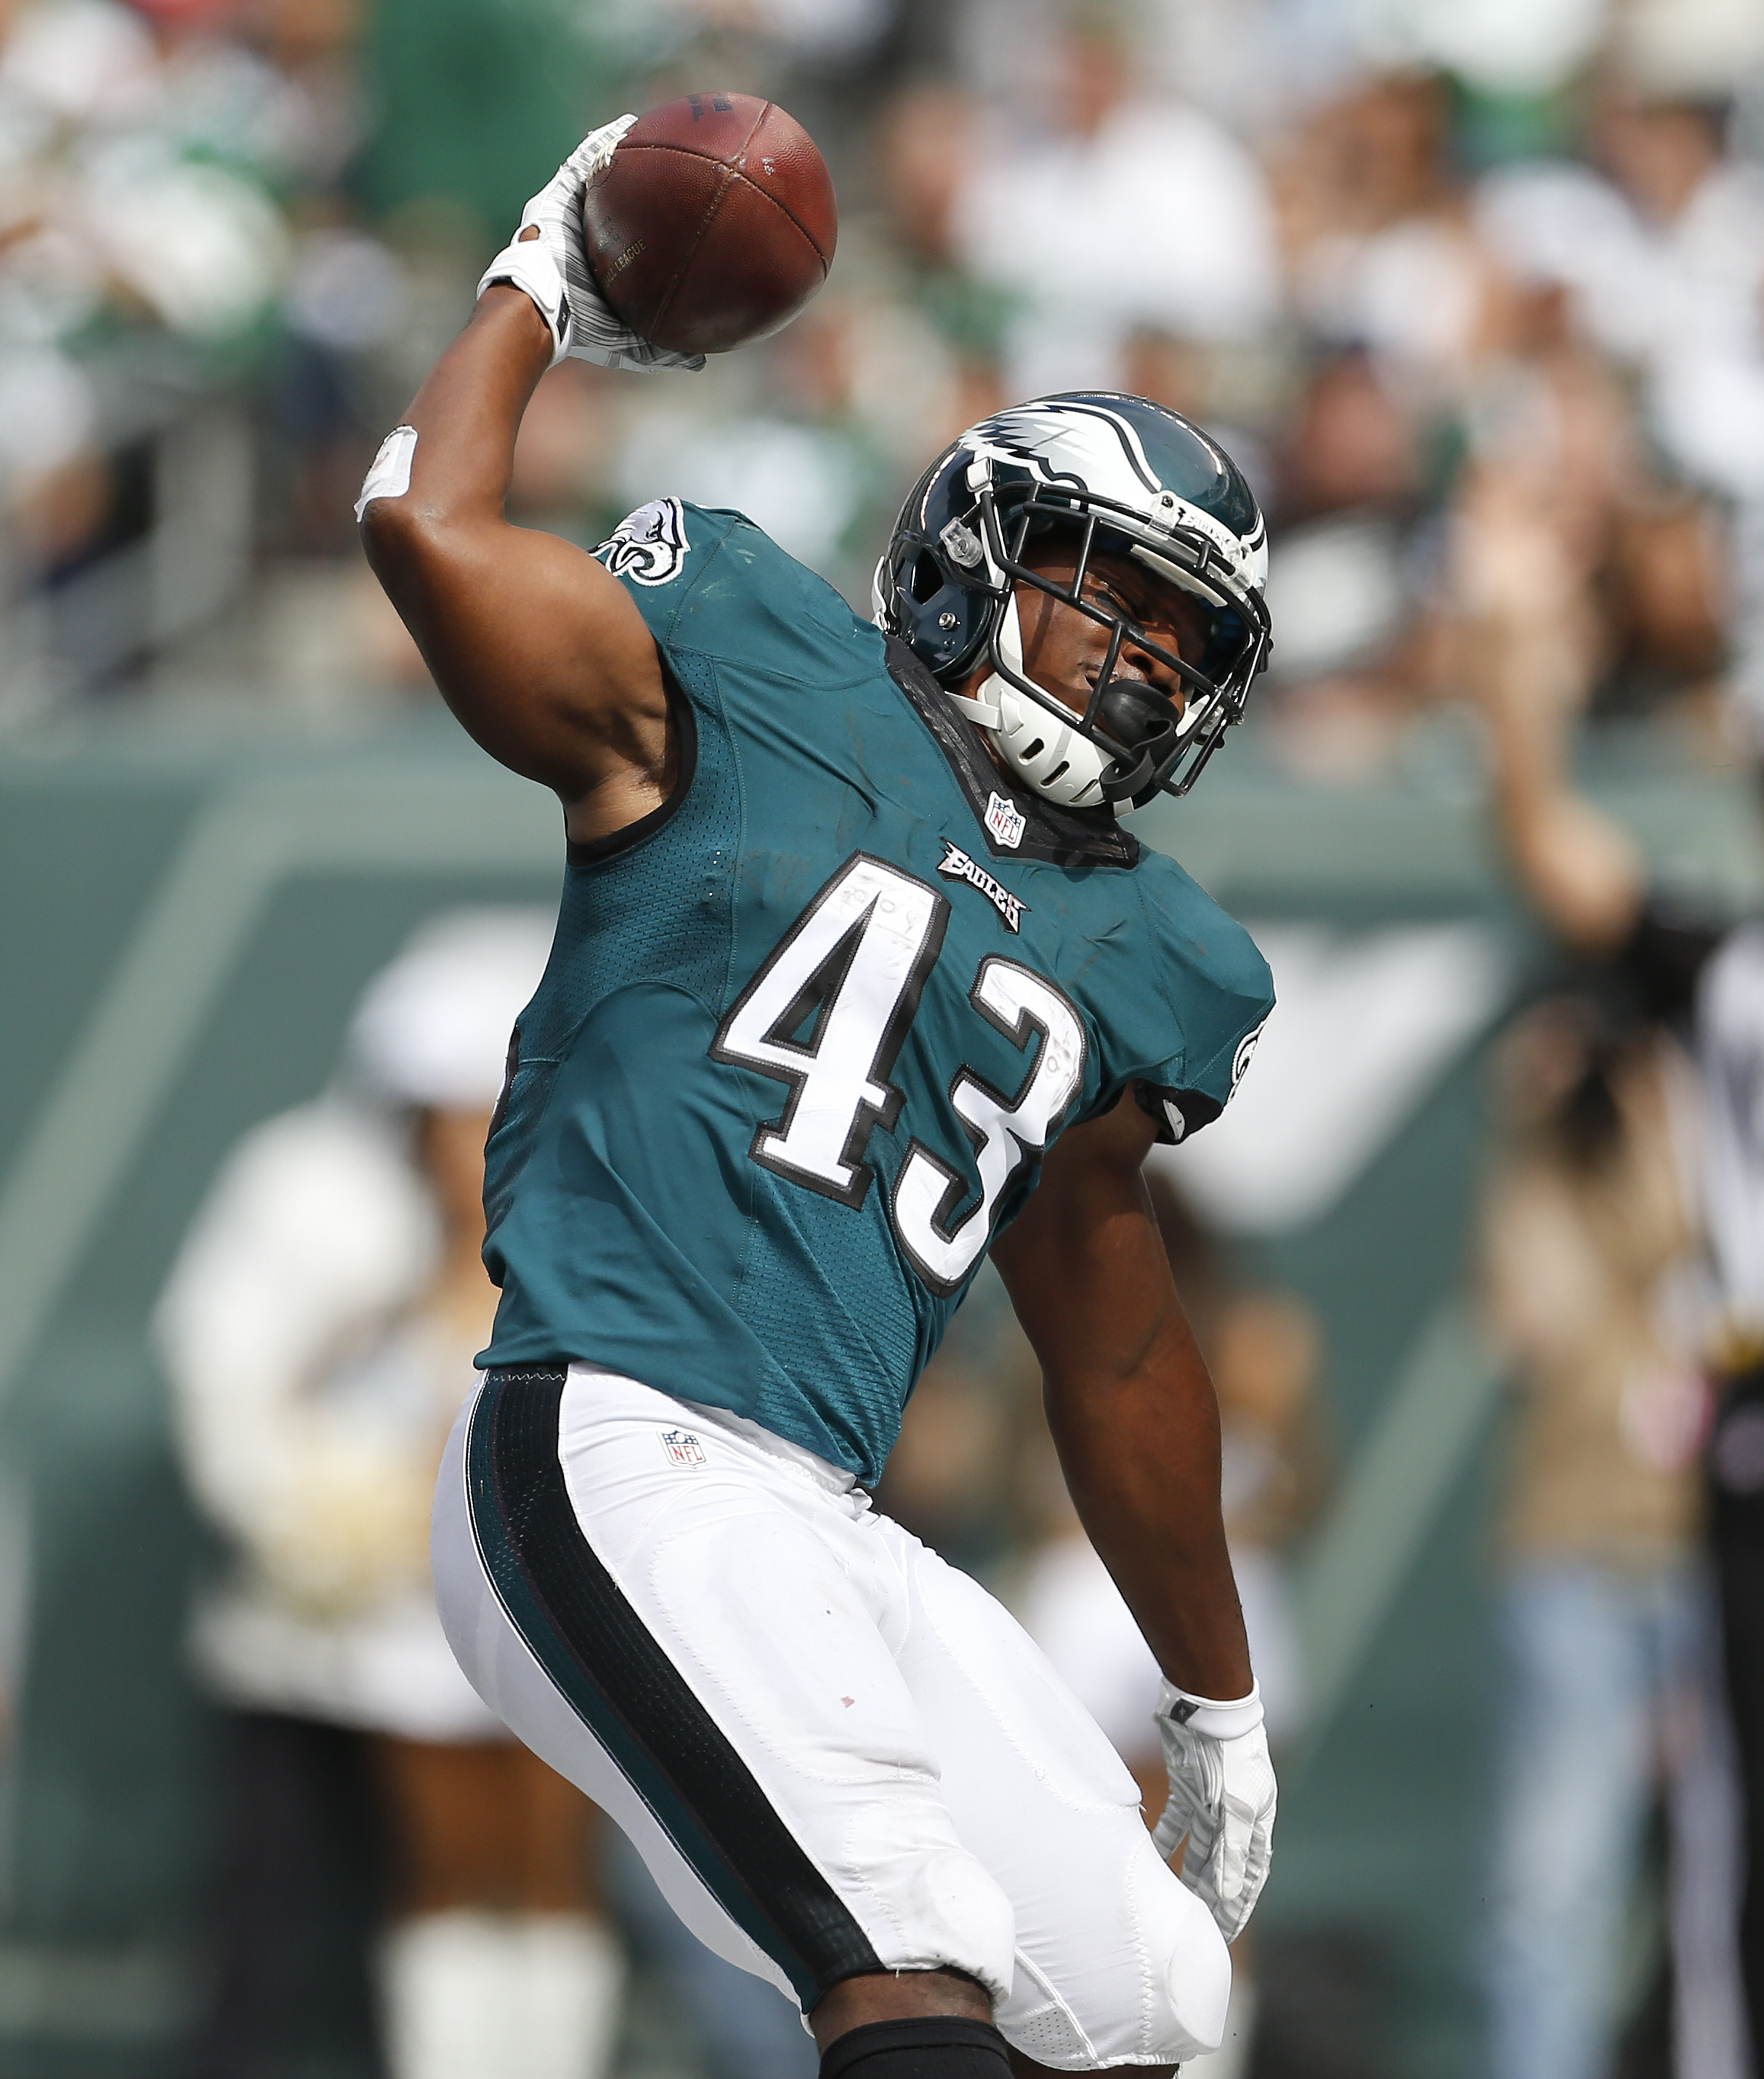 Philadelphia Eagles running back Darren Sproles (43) celebrates after scoring a touchdown against the New York Jets during the second quarter of an NFL football game, Sunday, Sept. 27, 2015, in East Rutherford, N.J. (AP Photo/Adam Hunger)